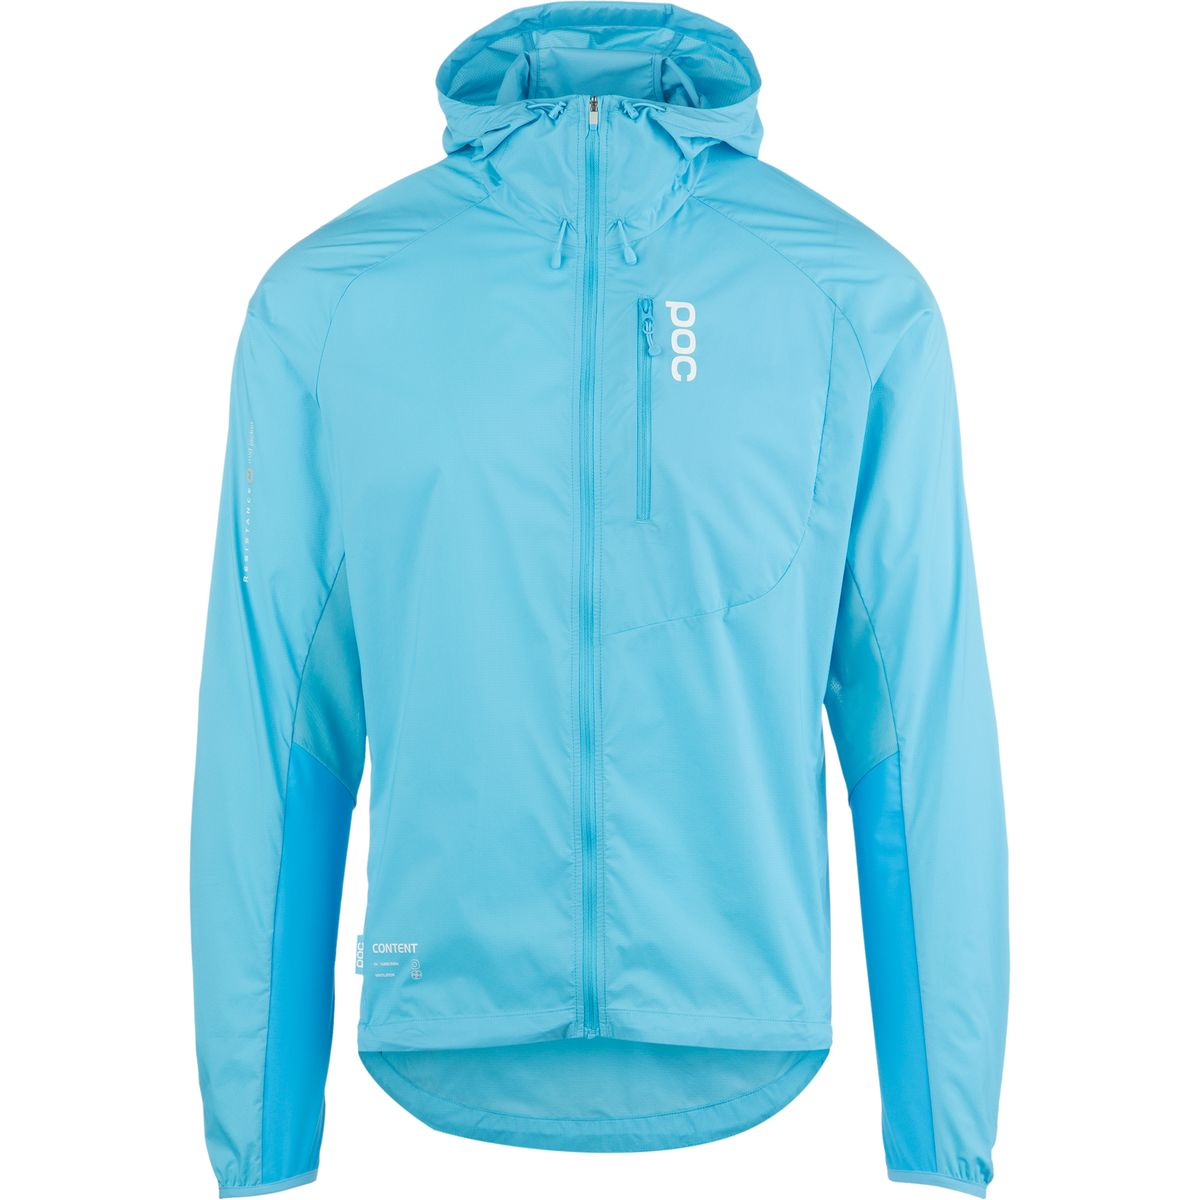 POC Resistance Mid Jacket Men's